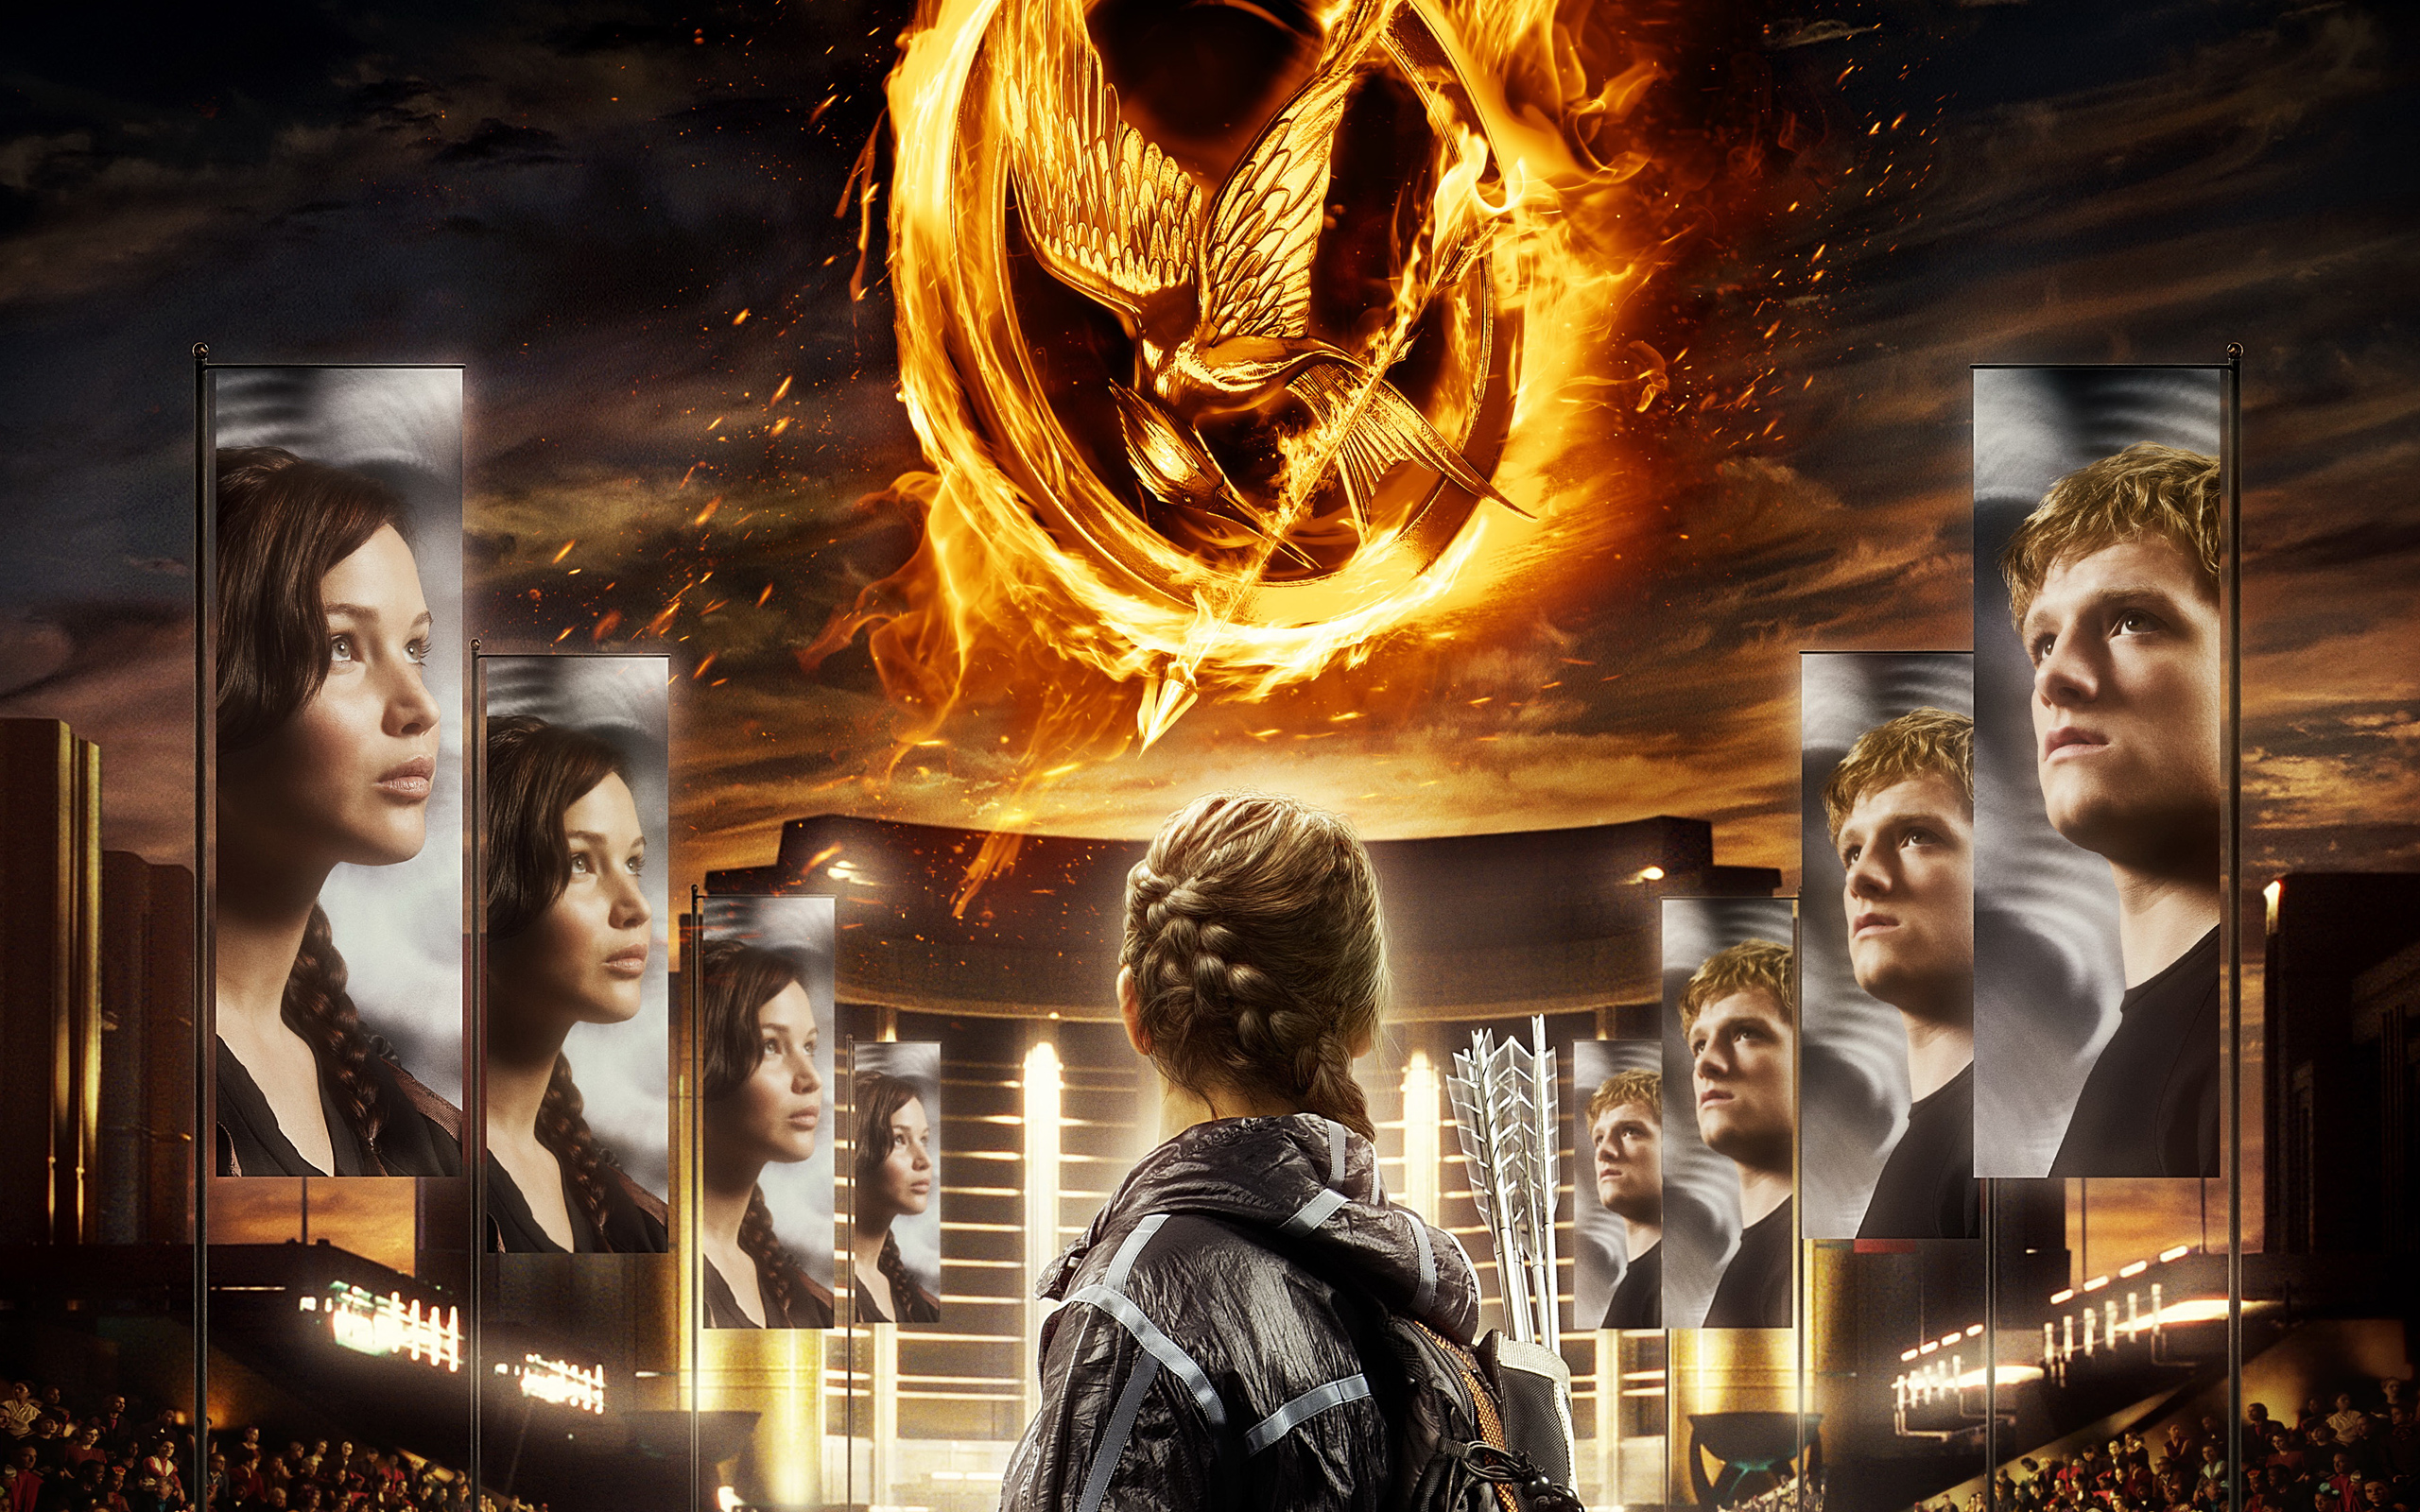 The Hunger Games - The Hunger Games Wallpaper (30621804 ...